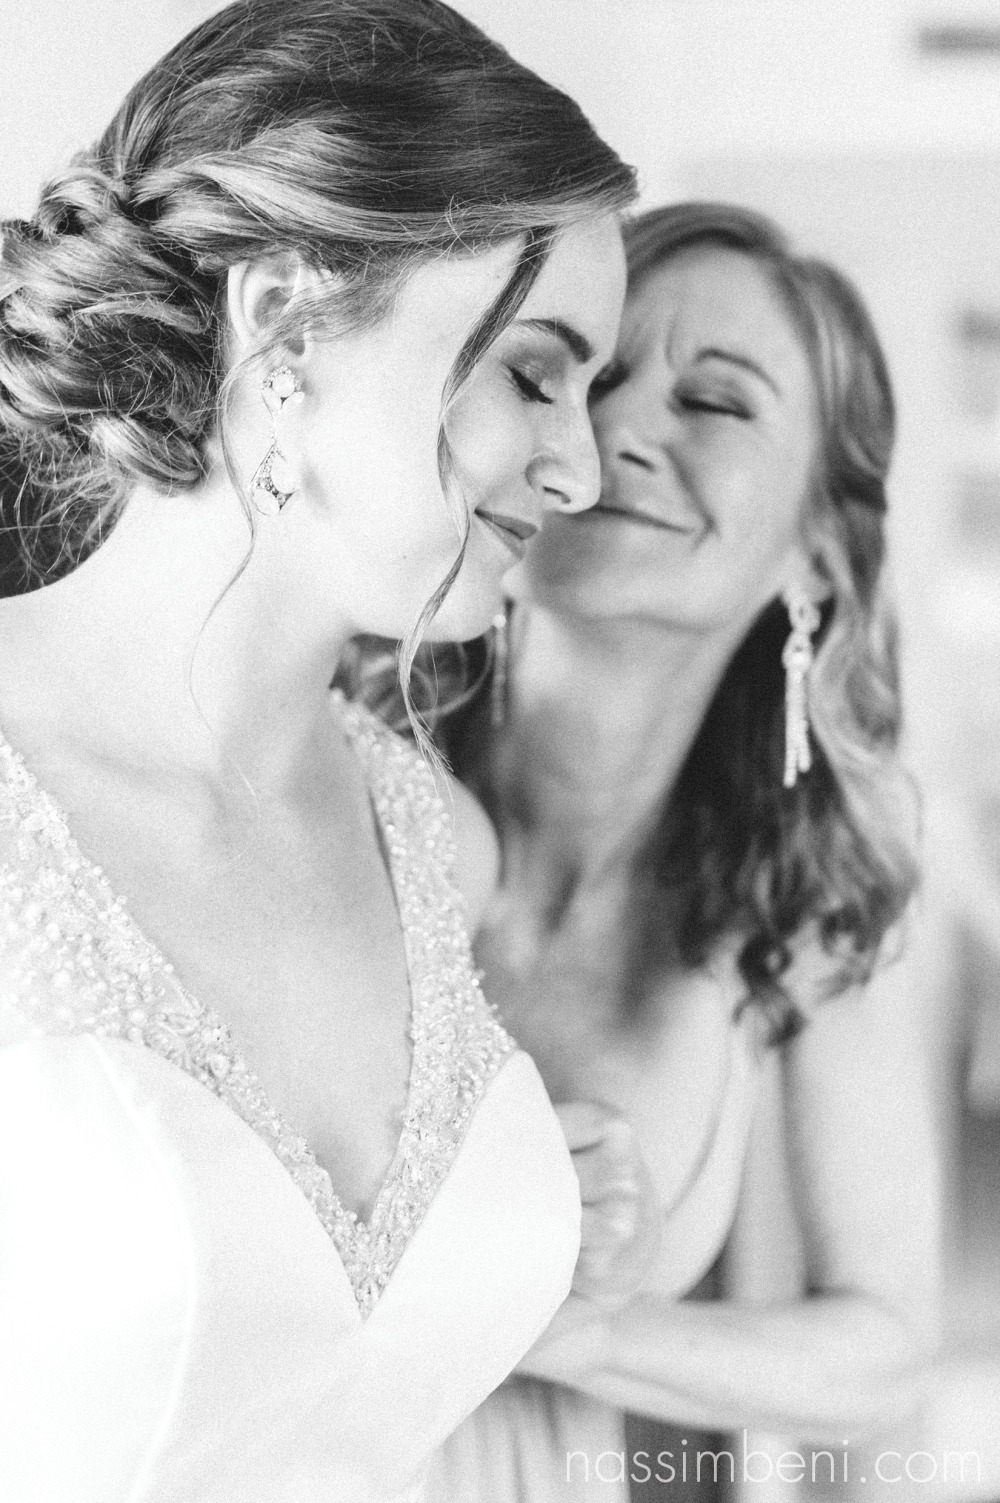 mom gives bride a kiss right after helping her put her gown on by Nassimbeni Photography